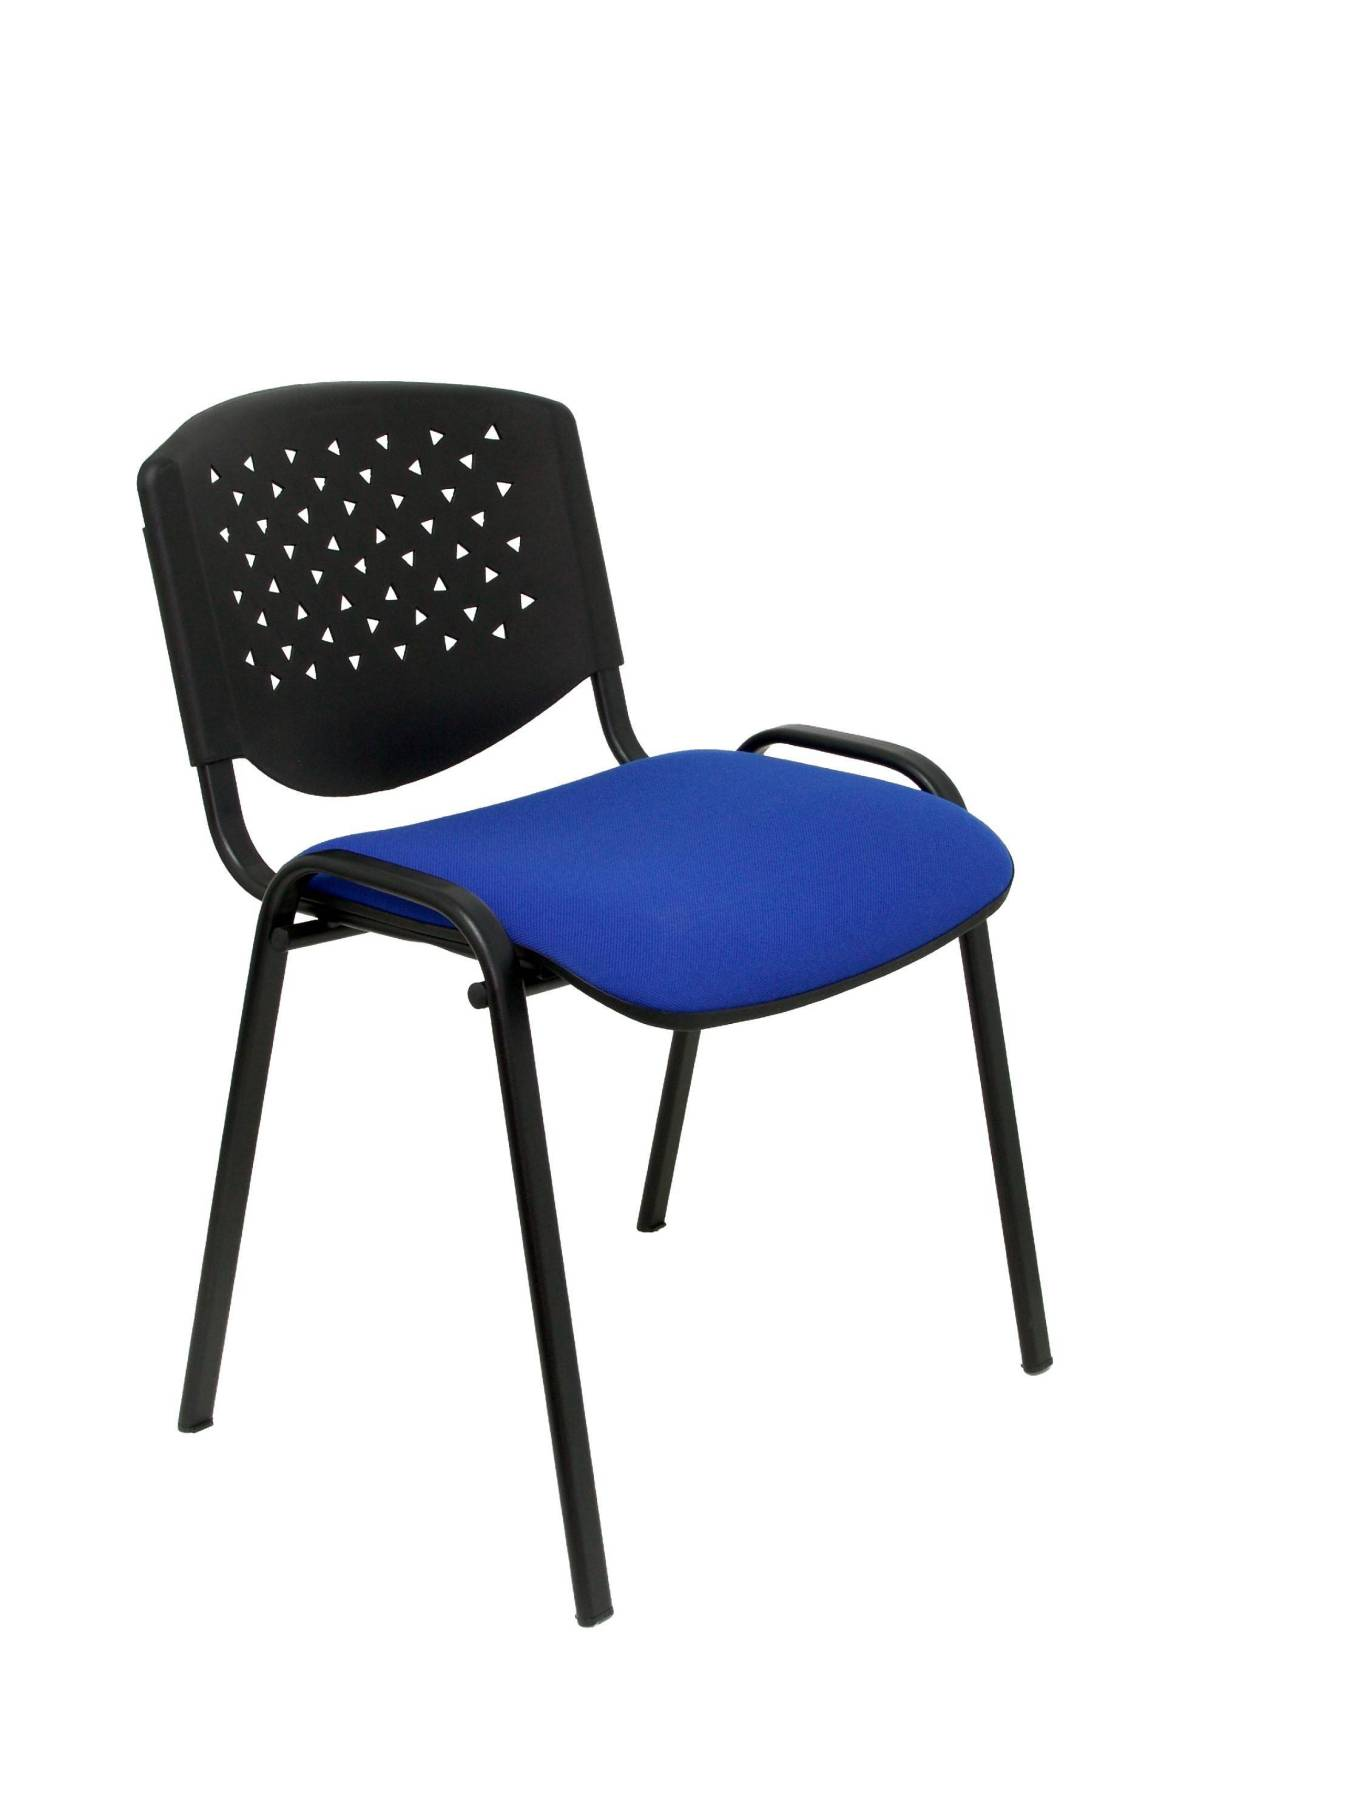 Pack 4 Guest Chairs Desk Ergonomic, Stackable, Multipurpose And Structure In Color Black Respaldo PVC Black Color And ASI